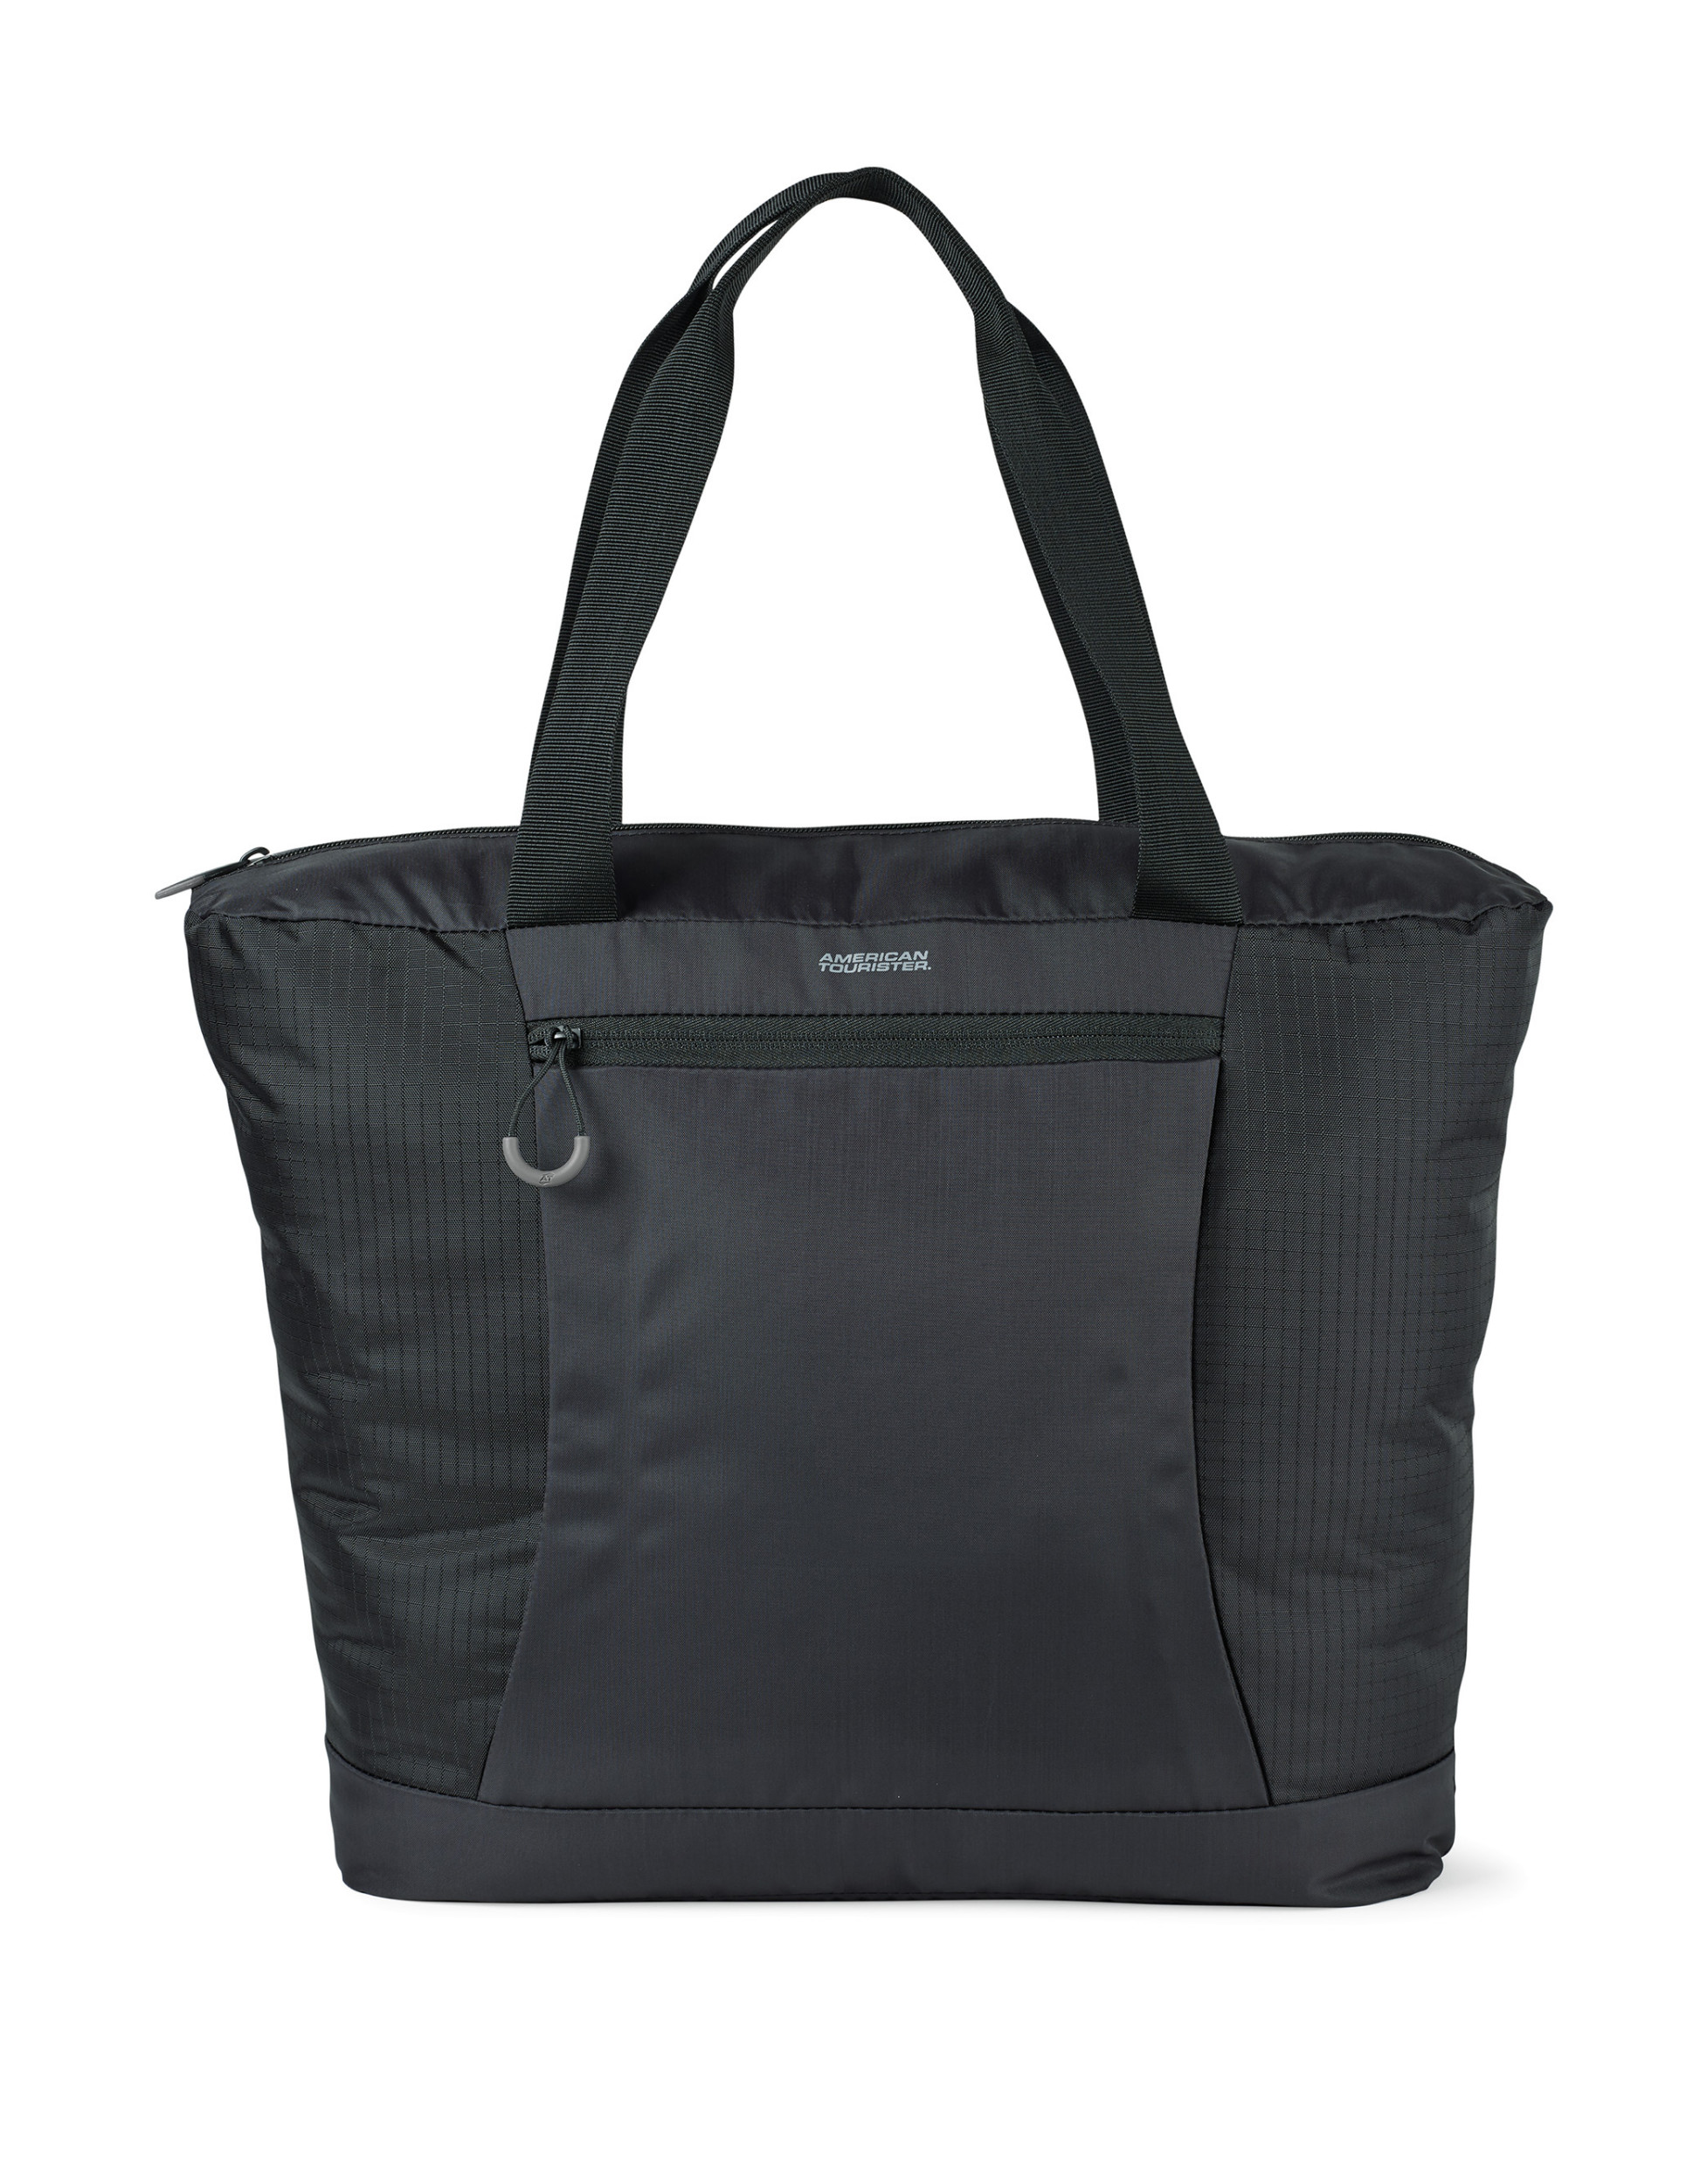 American Tourister 96040 - Voyager Packable Tote